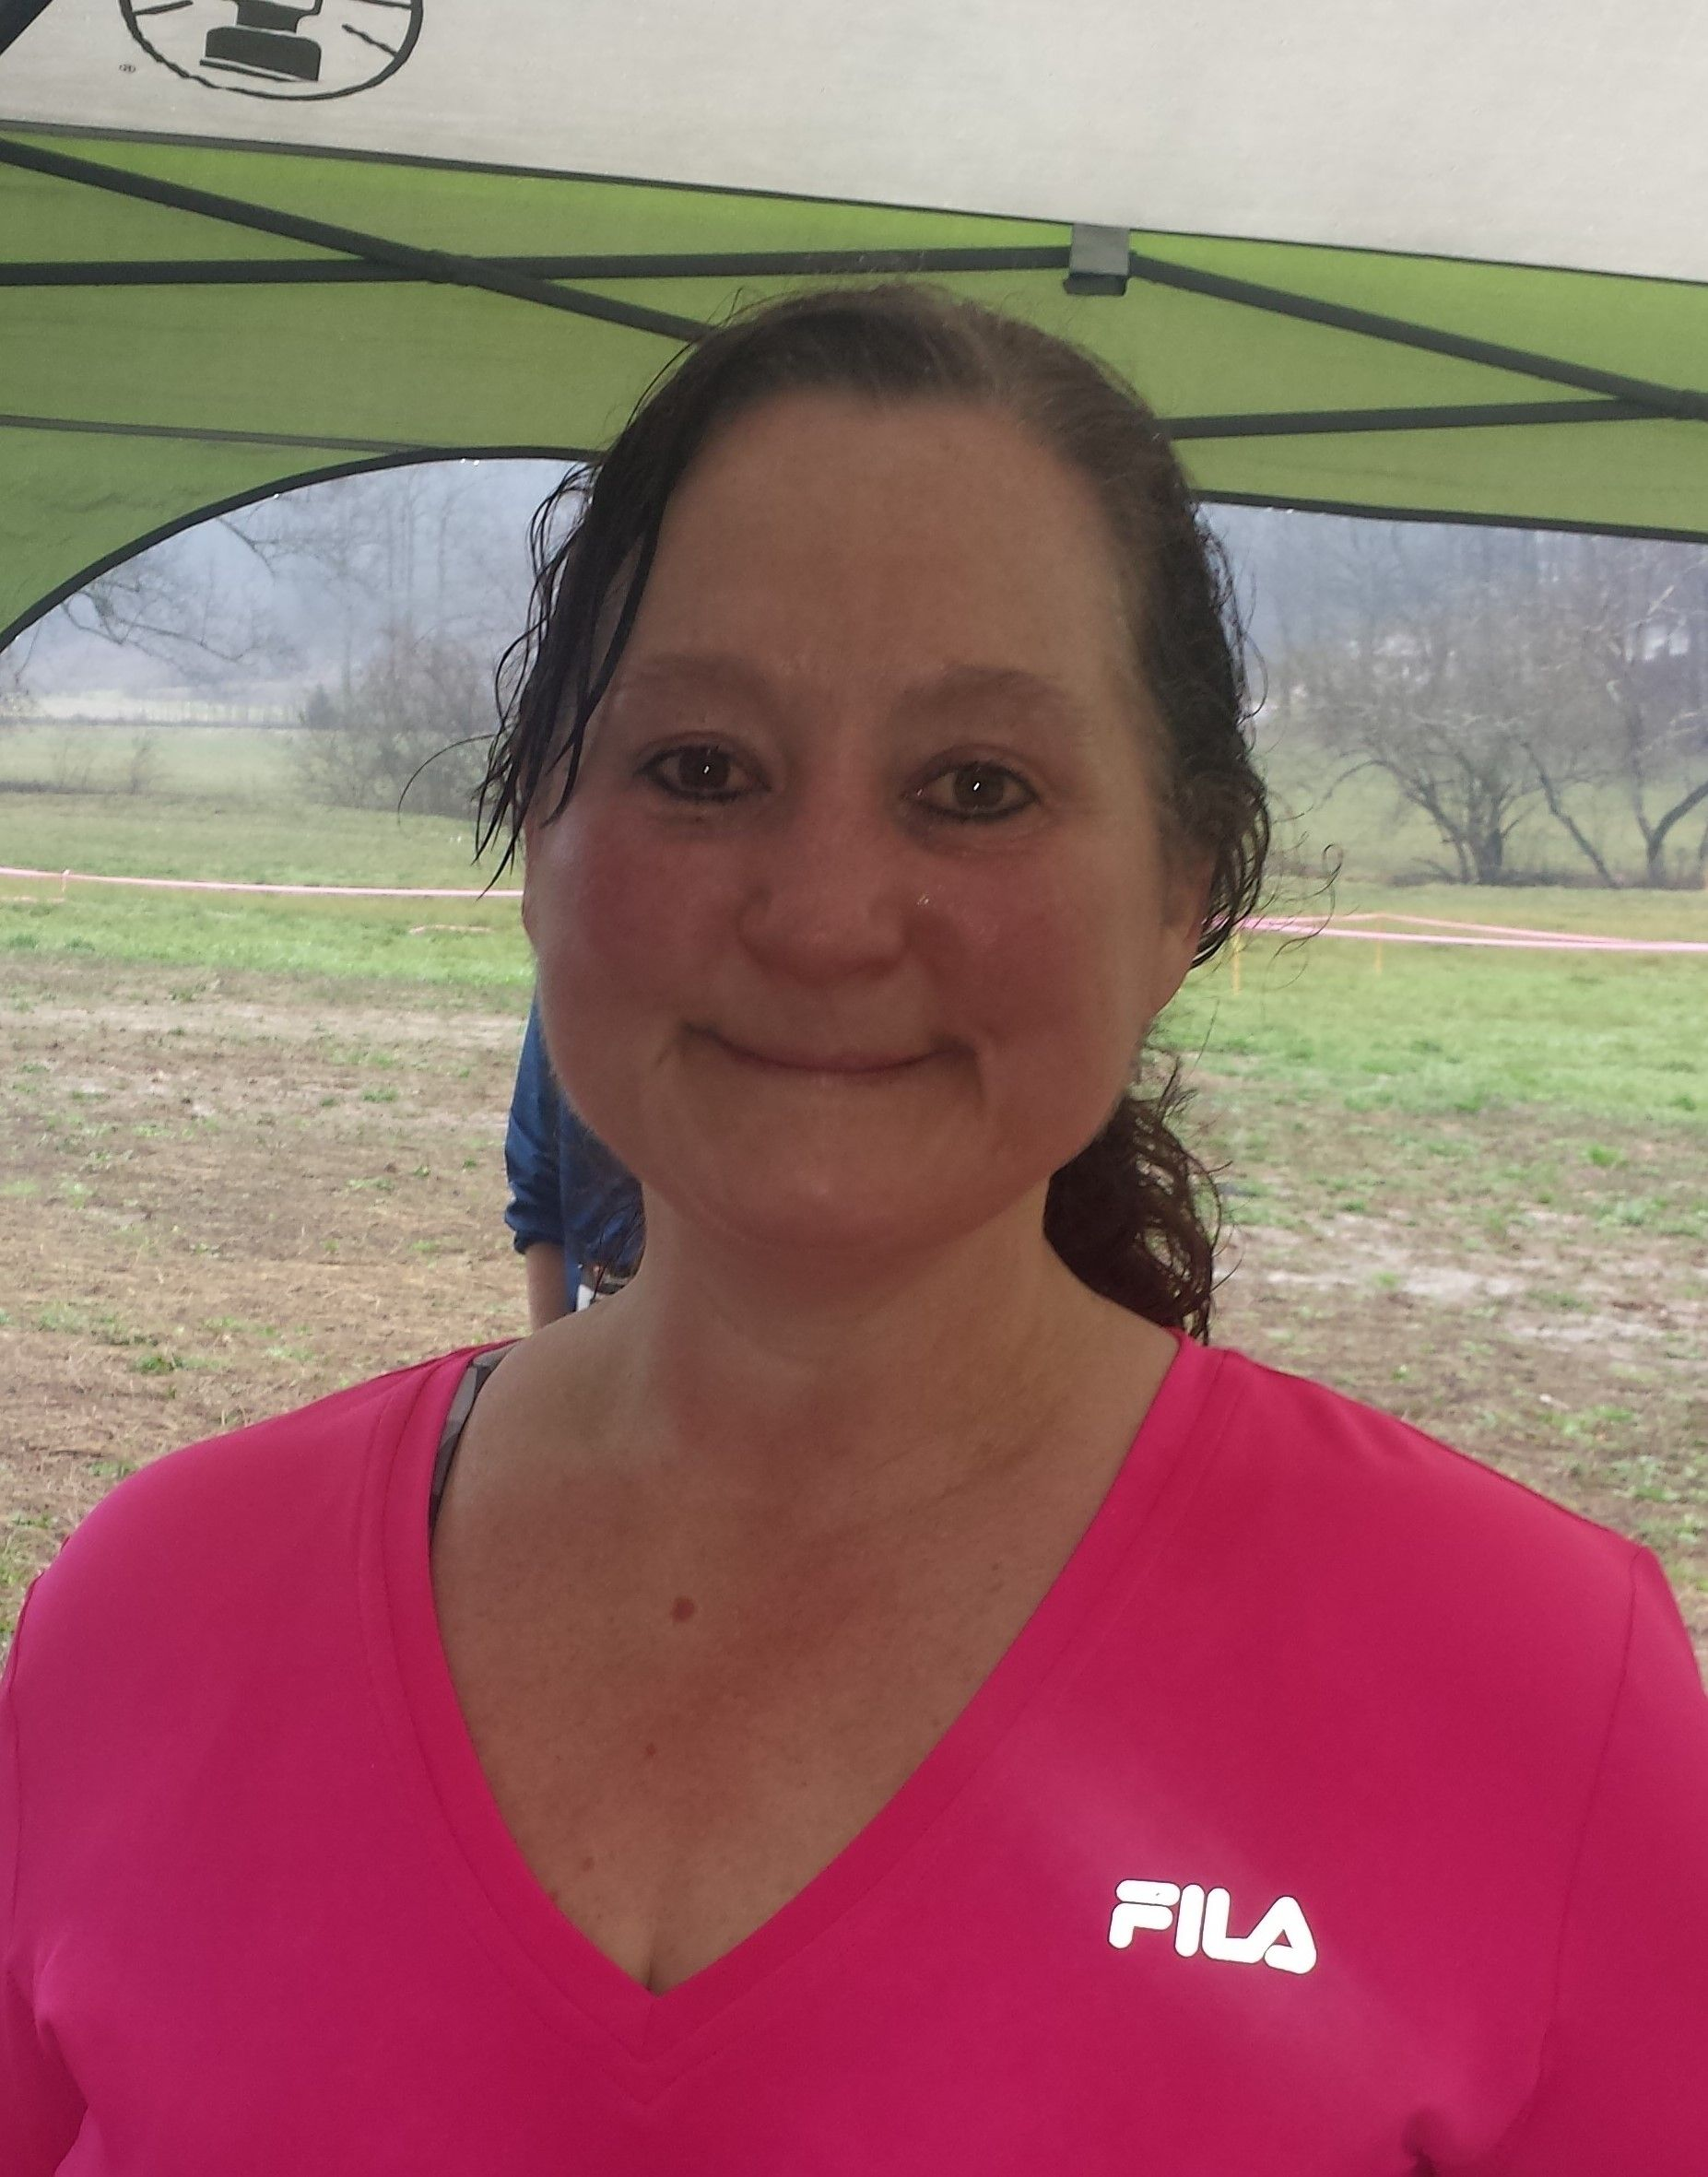 Chocolate Rush 5K - 3/14/15 - This was my first 5K.  It was rainy and muddy and probably one of the hardest things I've ever done. I struggled but finished!  Yes, I cried.  I accomplished a goal I set for myself in August of 2014. And yes I was very proud of myself!!